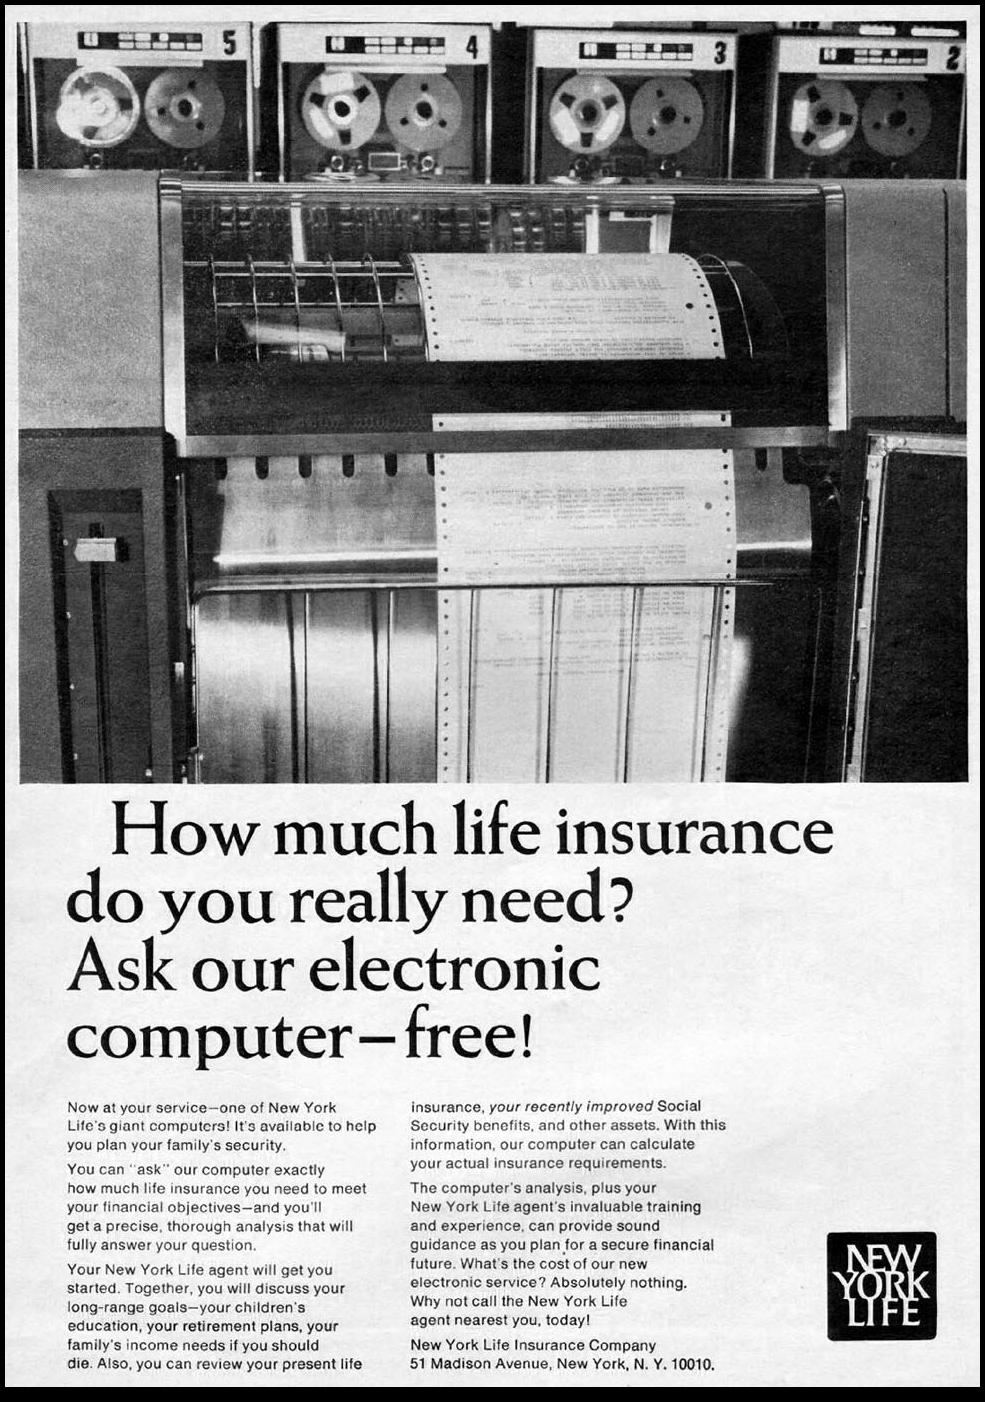 LIFE INSURANCE NEWSWEEK 10/12/1964